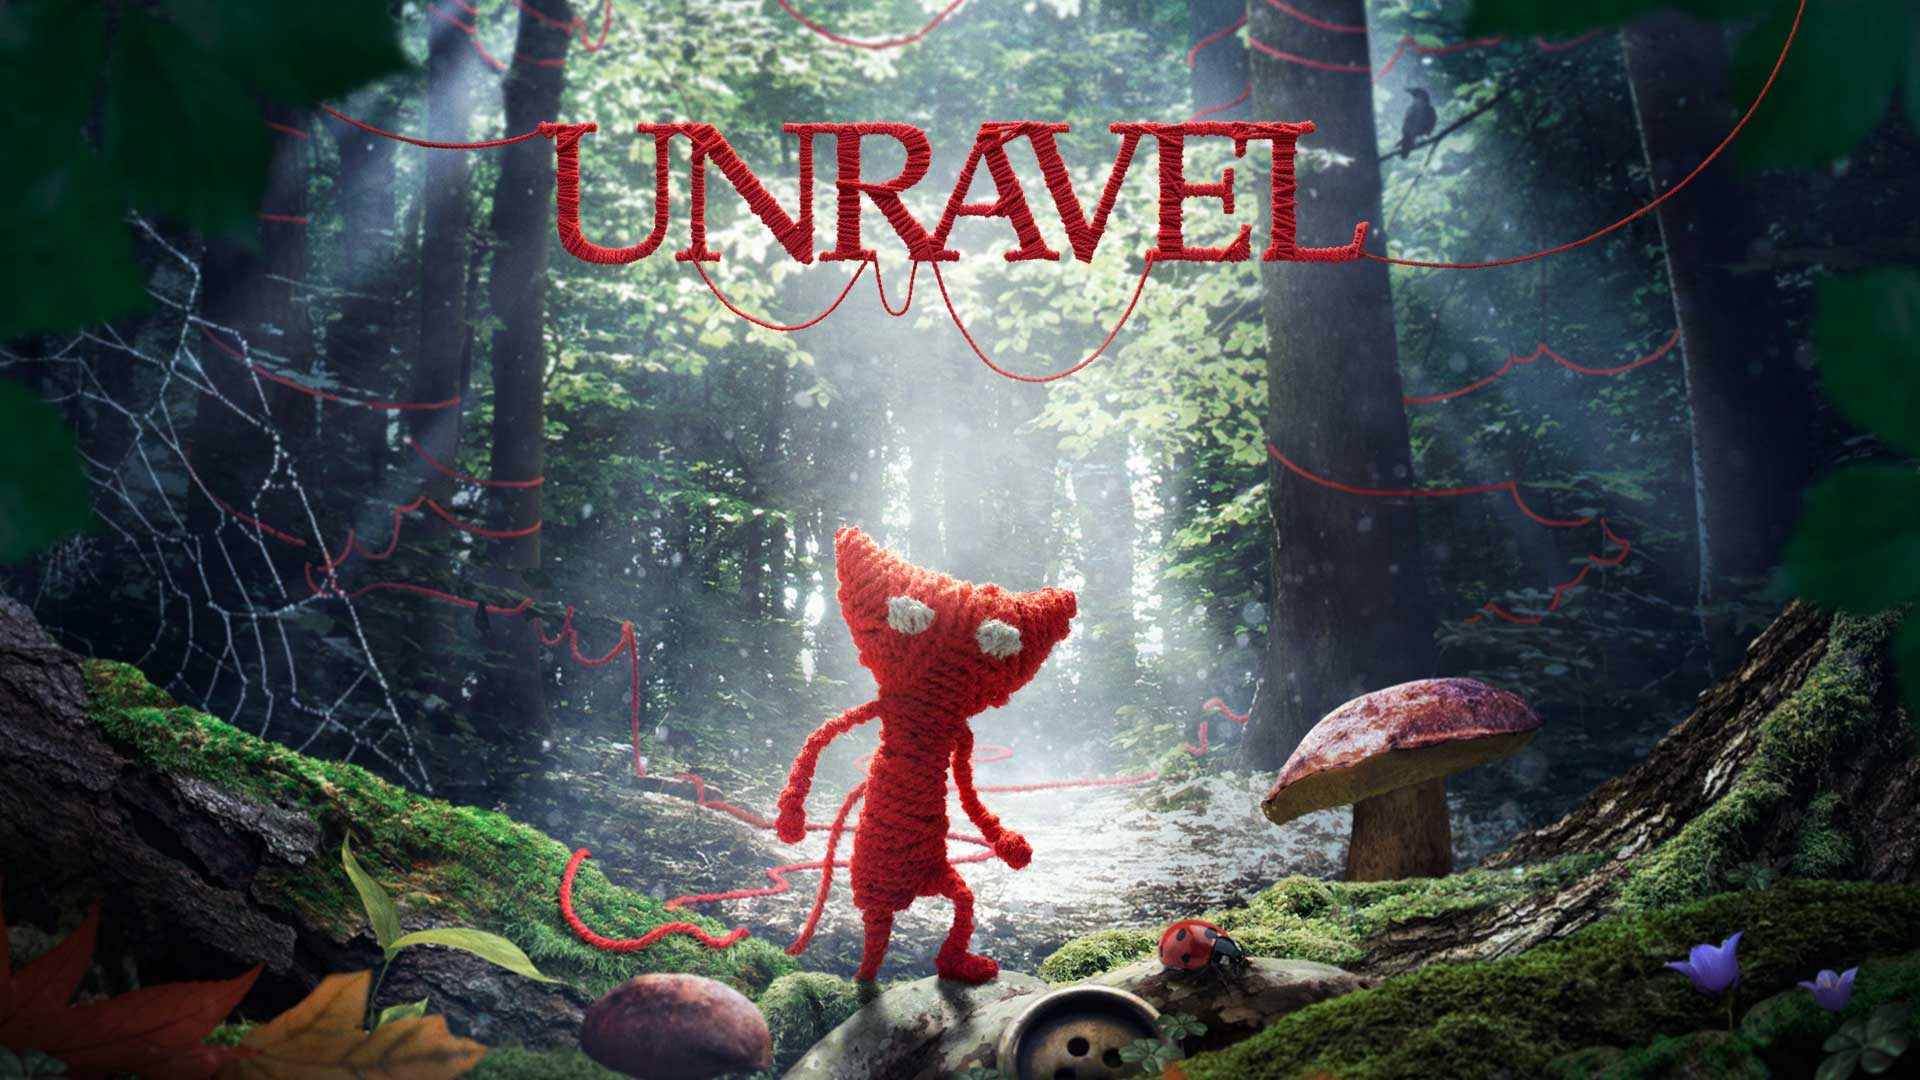 Unravel telecharger gratuit de PC et Torrent